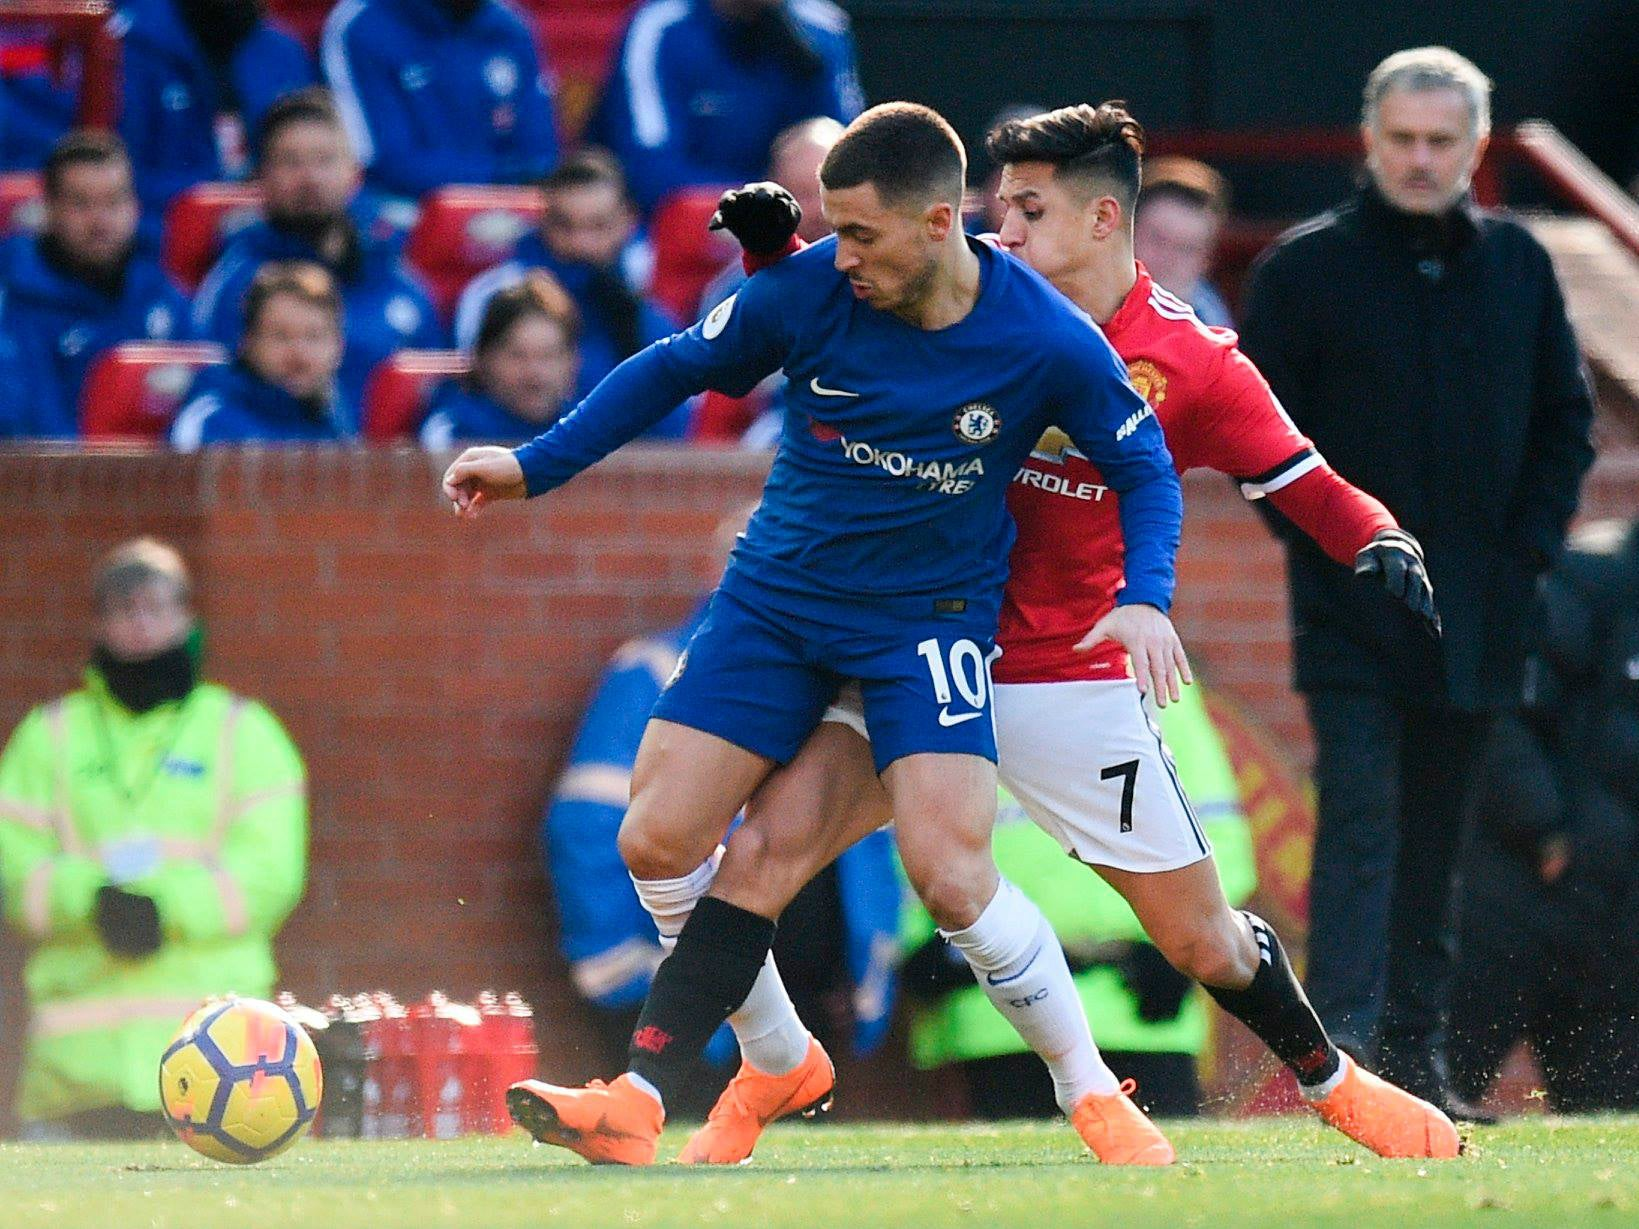 Man U Vs Chelsea: Chelsea Vs Man United Live Stream: How To Watch The FA Cup